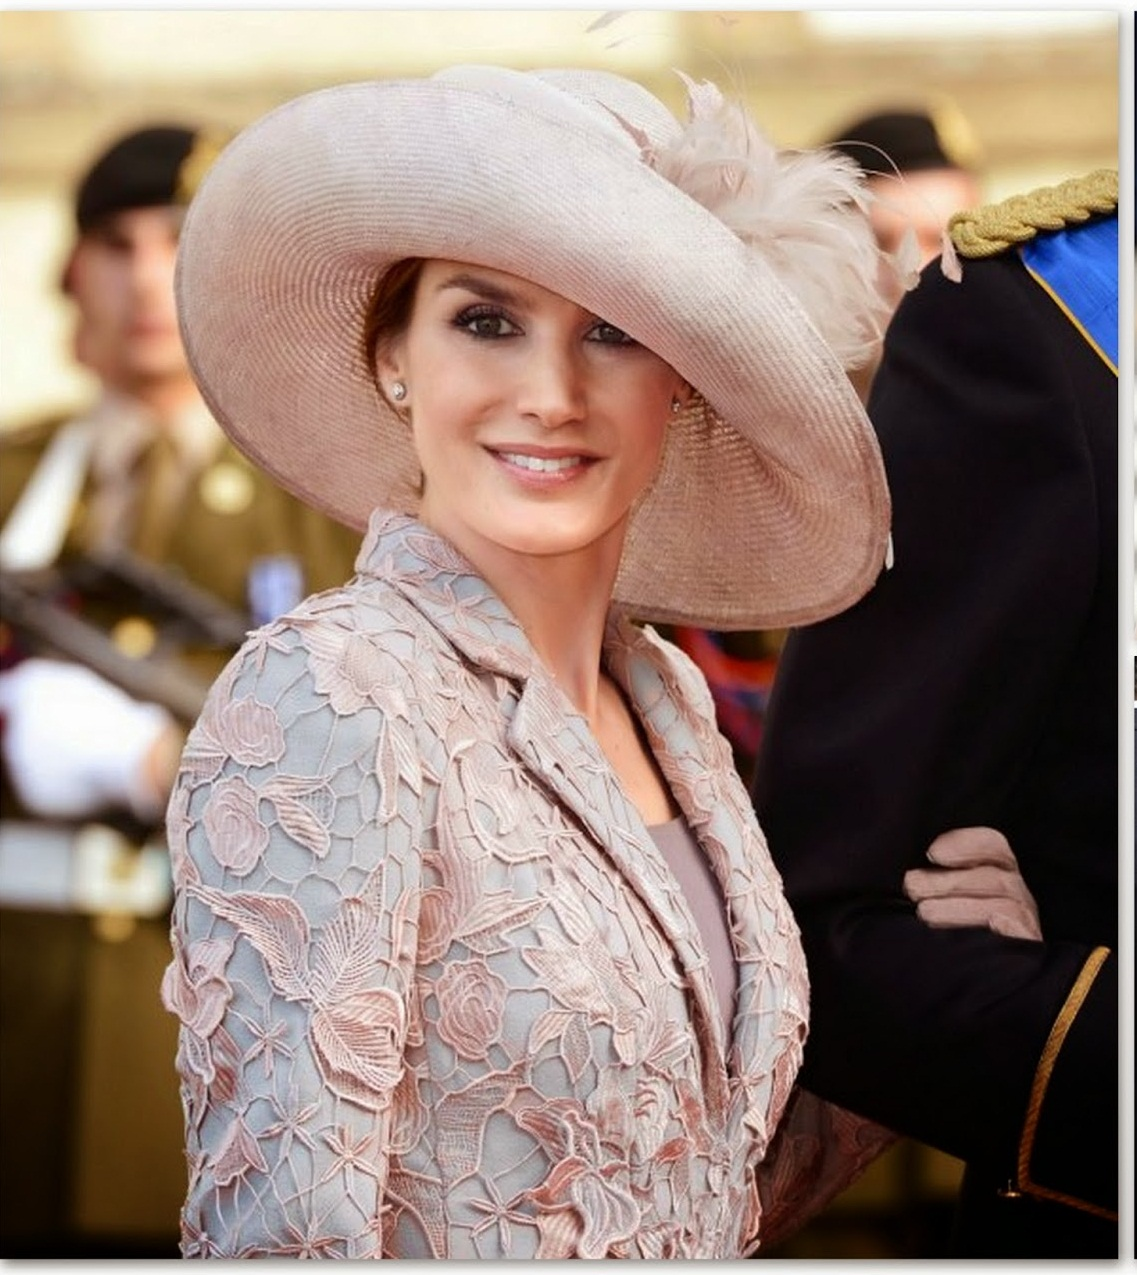 of spain queen letizia of spain photo 716259 0 vote 1137x1275